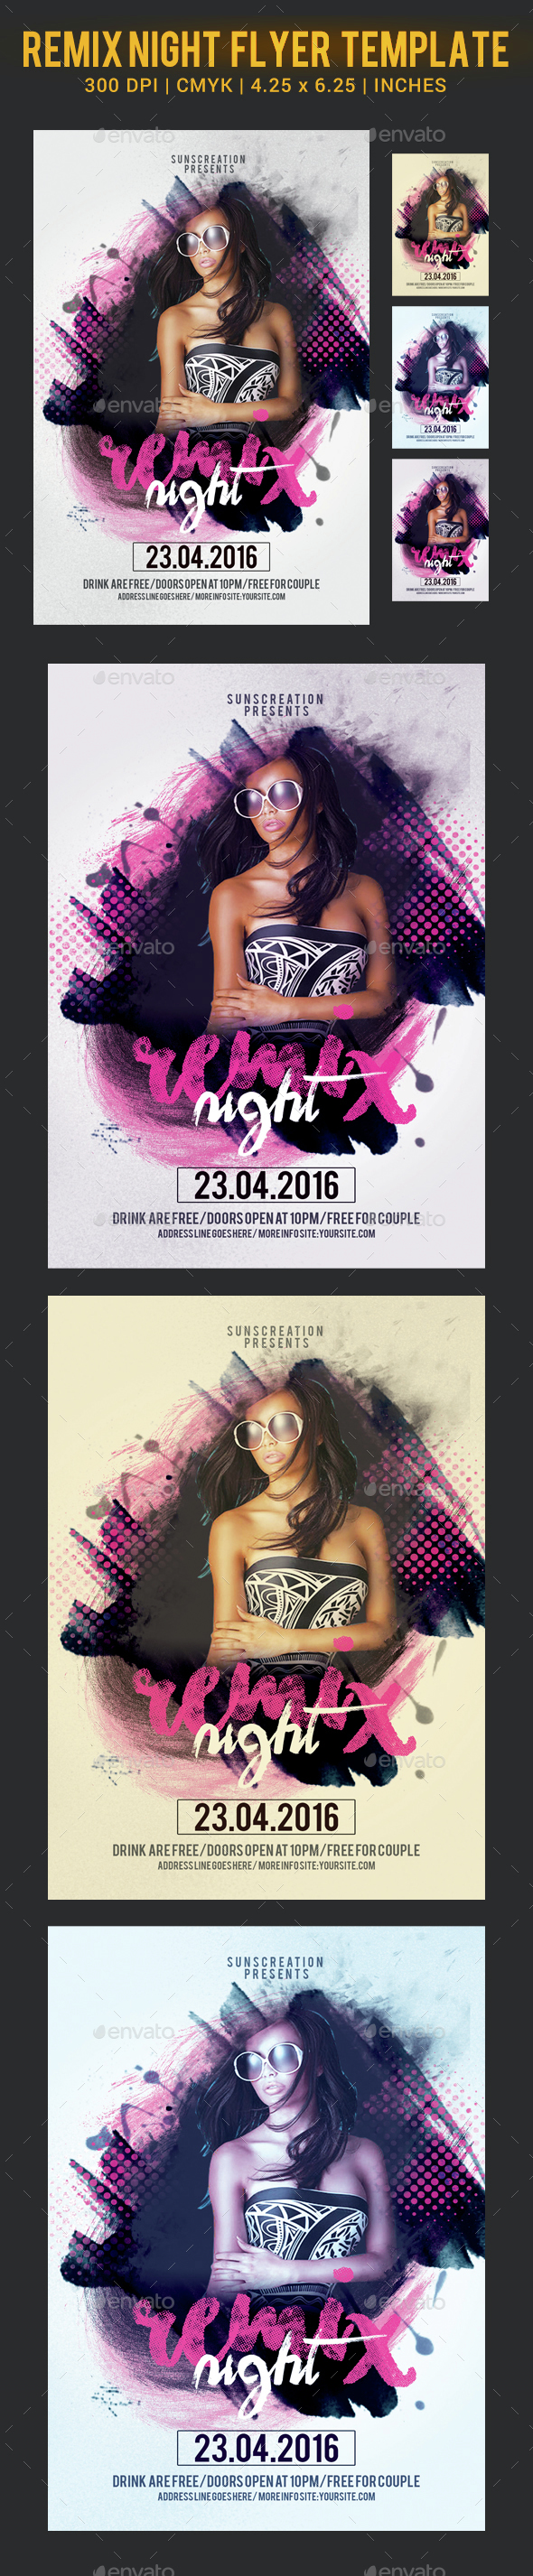 Remix Night Party FlyerTemplate - Clubs & Parties Events